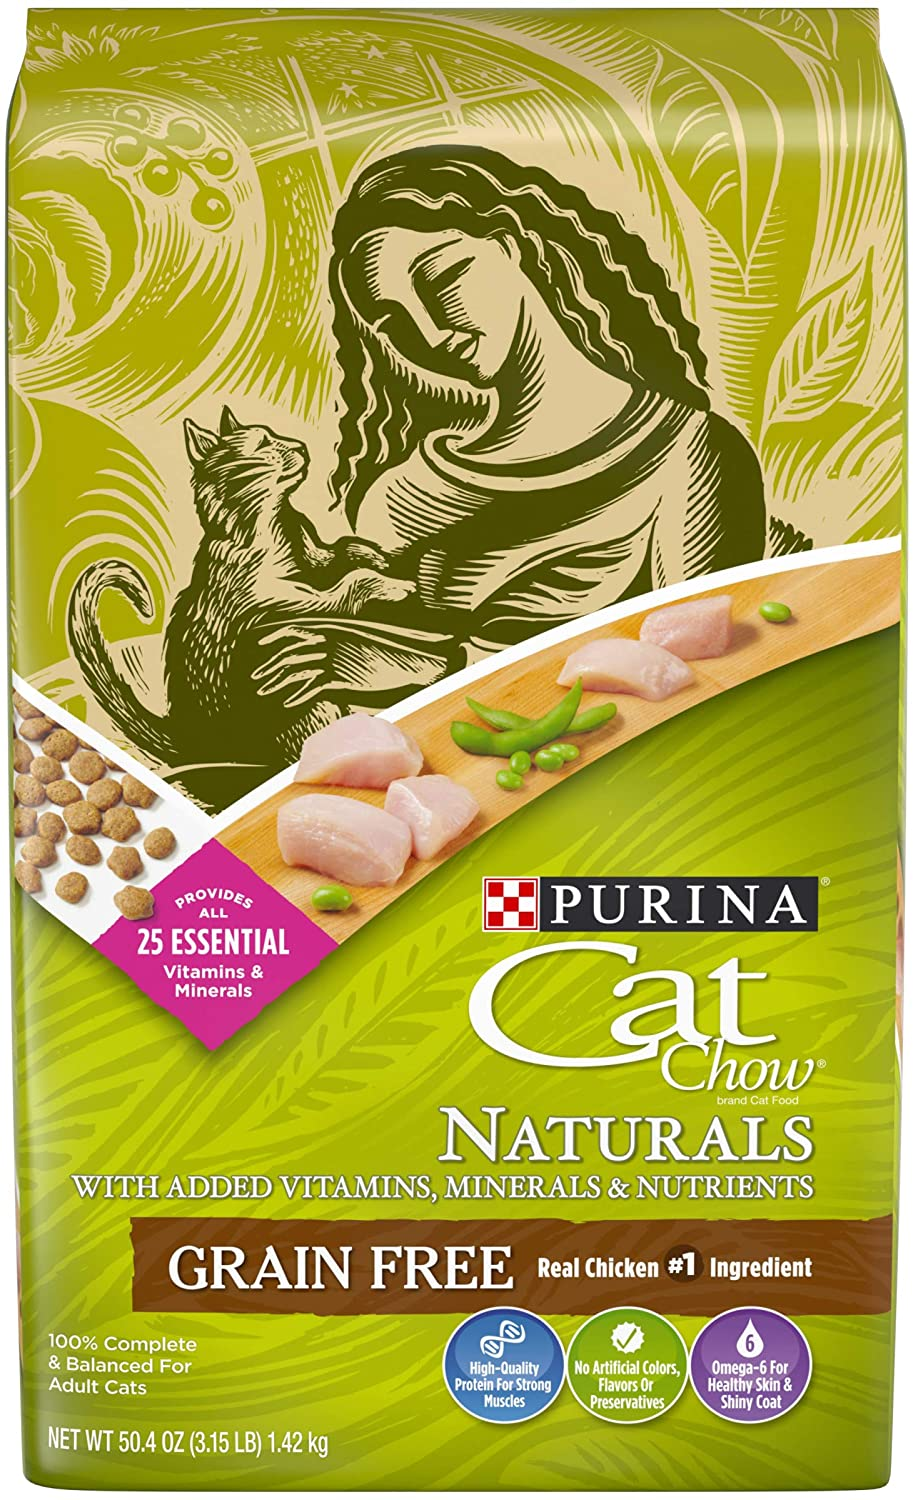 Purina Cat Chow Naturals Grain-Free with Real Chicken Food